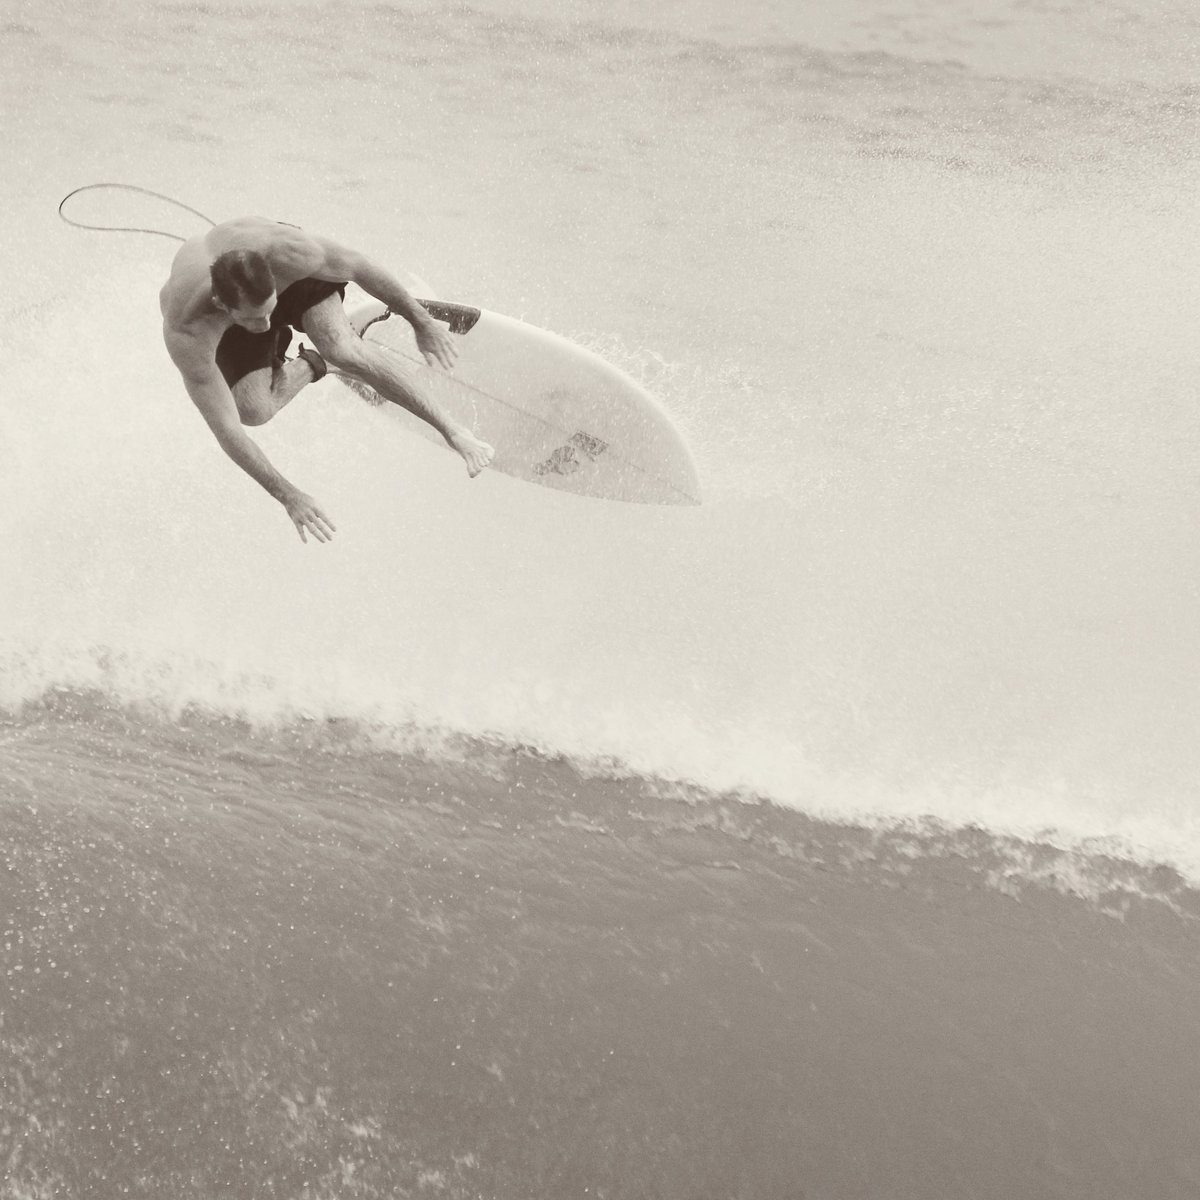 Surfsup-Two-BW-SQ